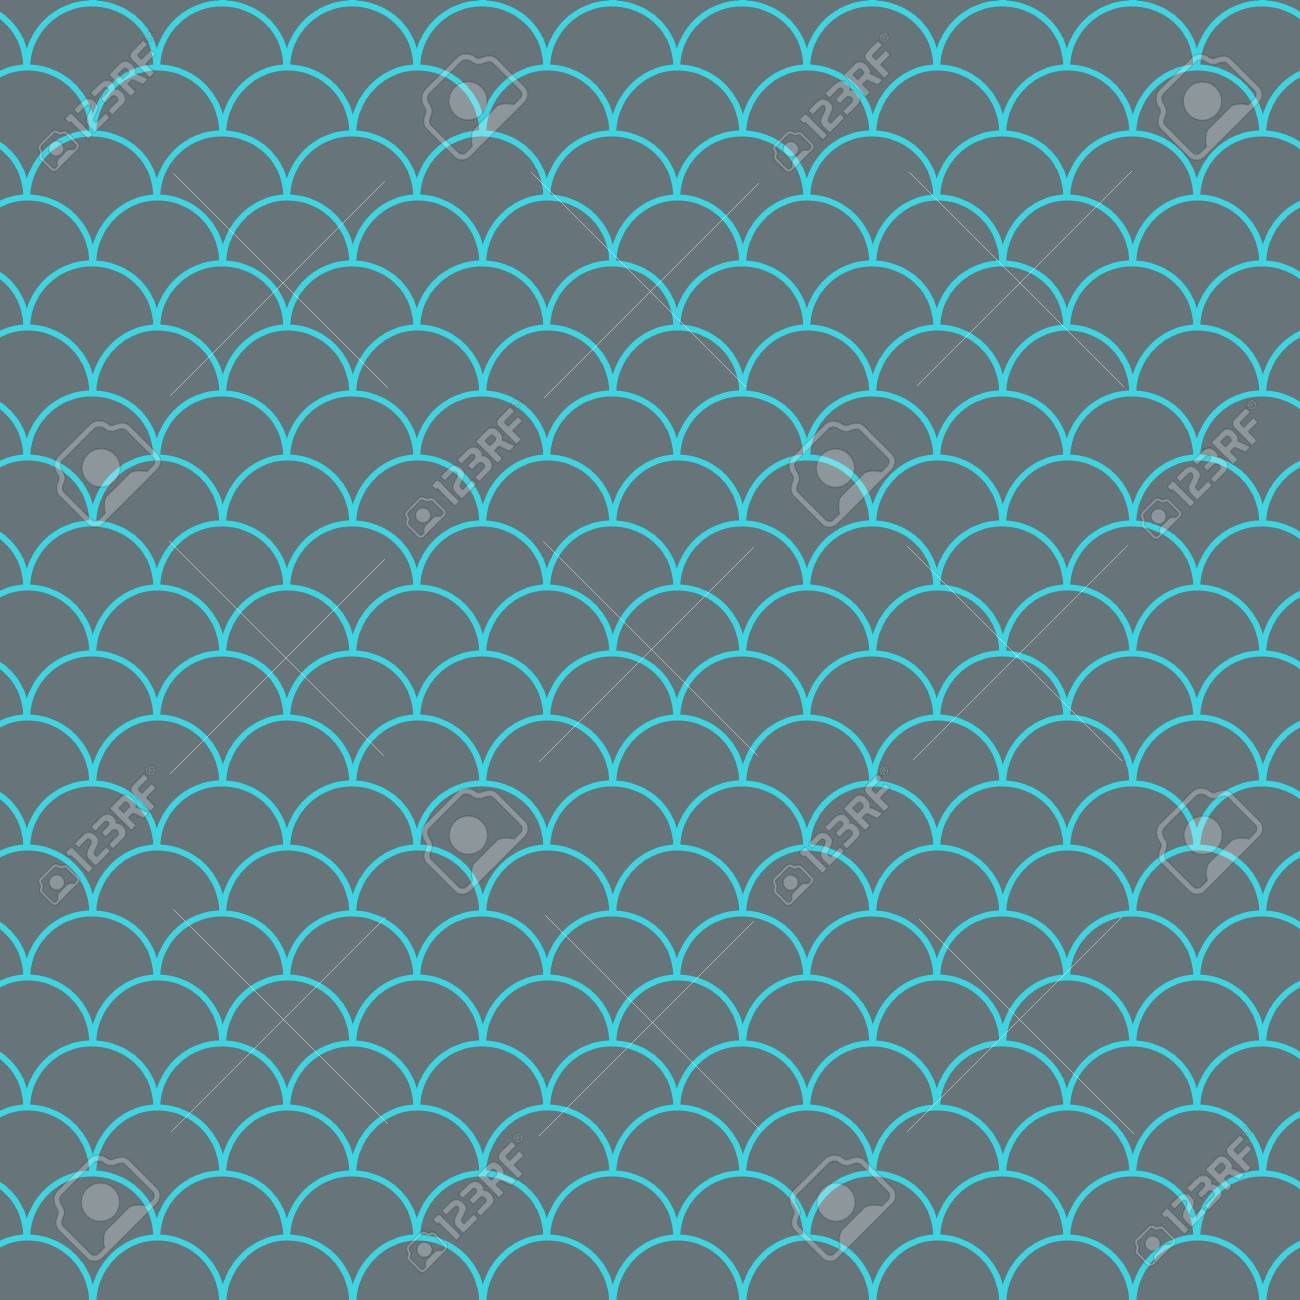 Seamless underwater texture Water Wave Mermaid Tail Seamless Pattern Fish Skin Texture Tillable Background For Girl Fabric Textile 123rfcom Mermaid Tail Seamless Pattern Fish Skin Texture Tillable